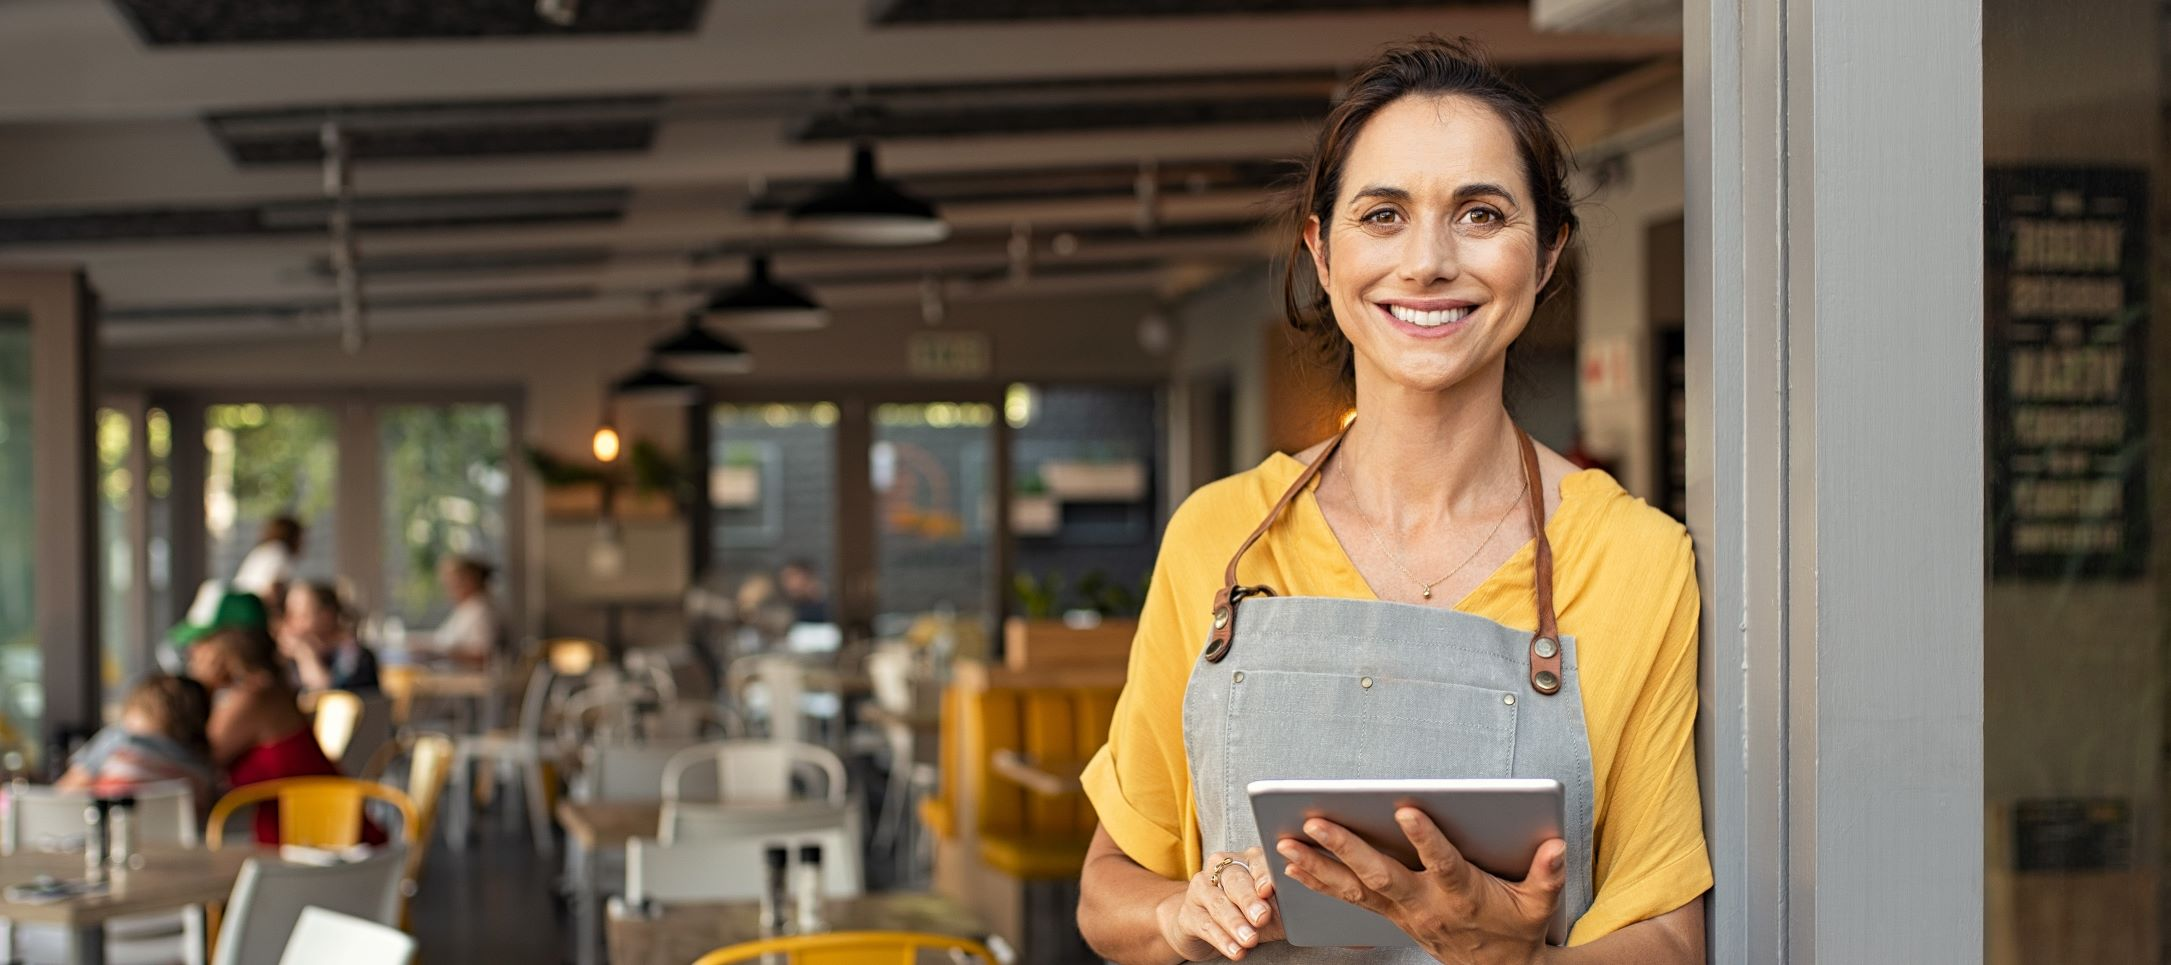 Exploring technologies for the food services industry